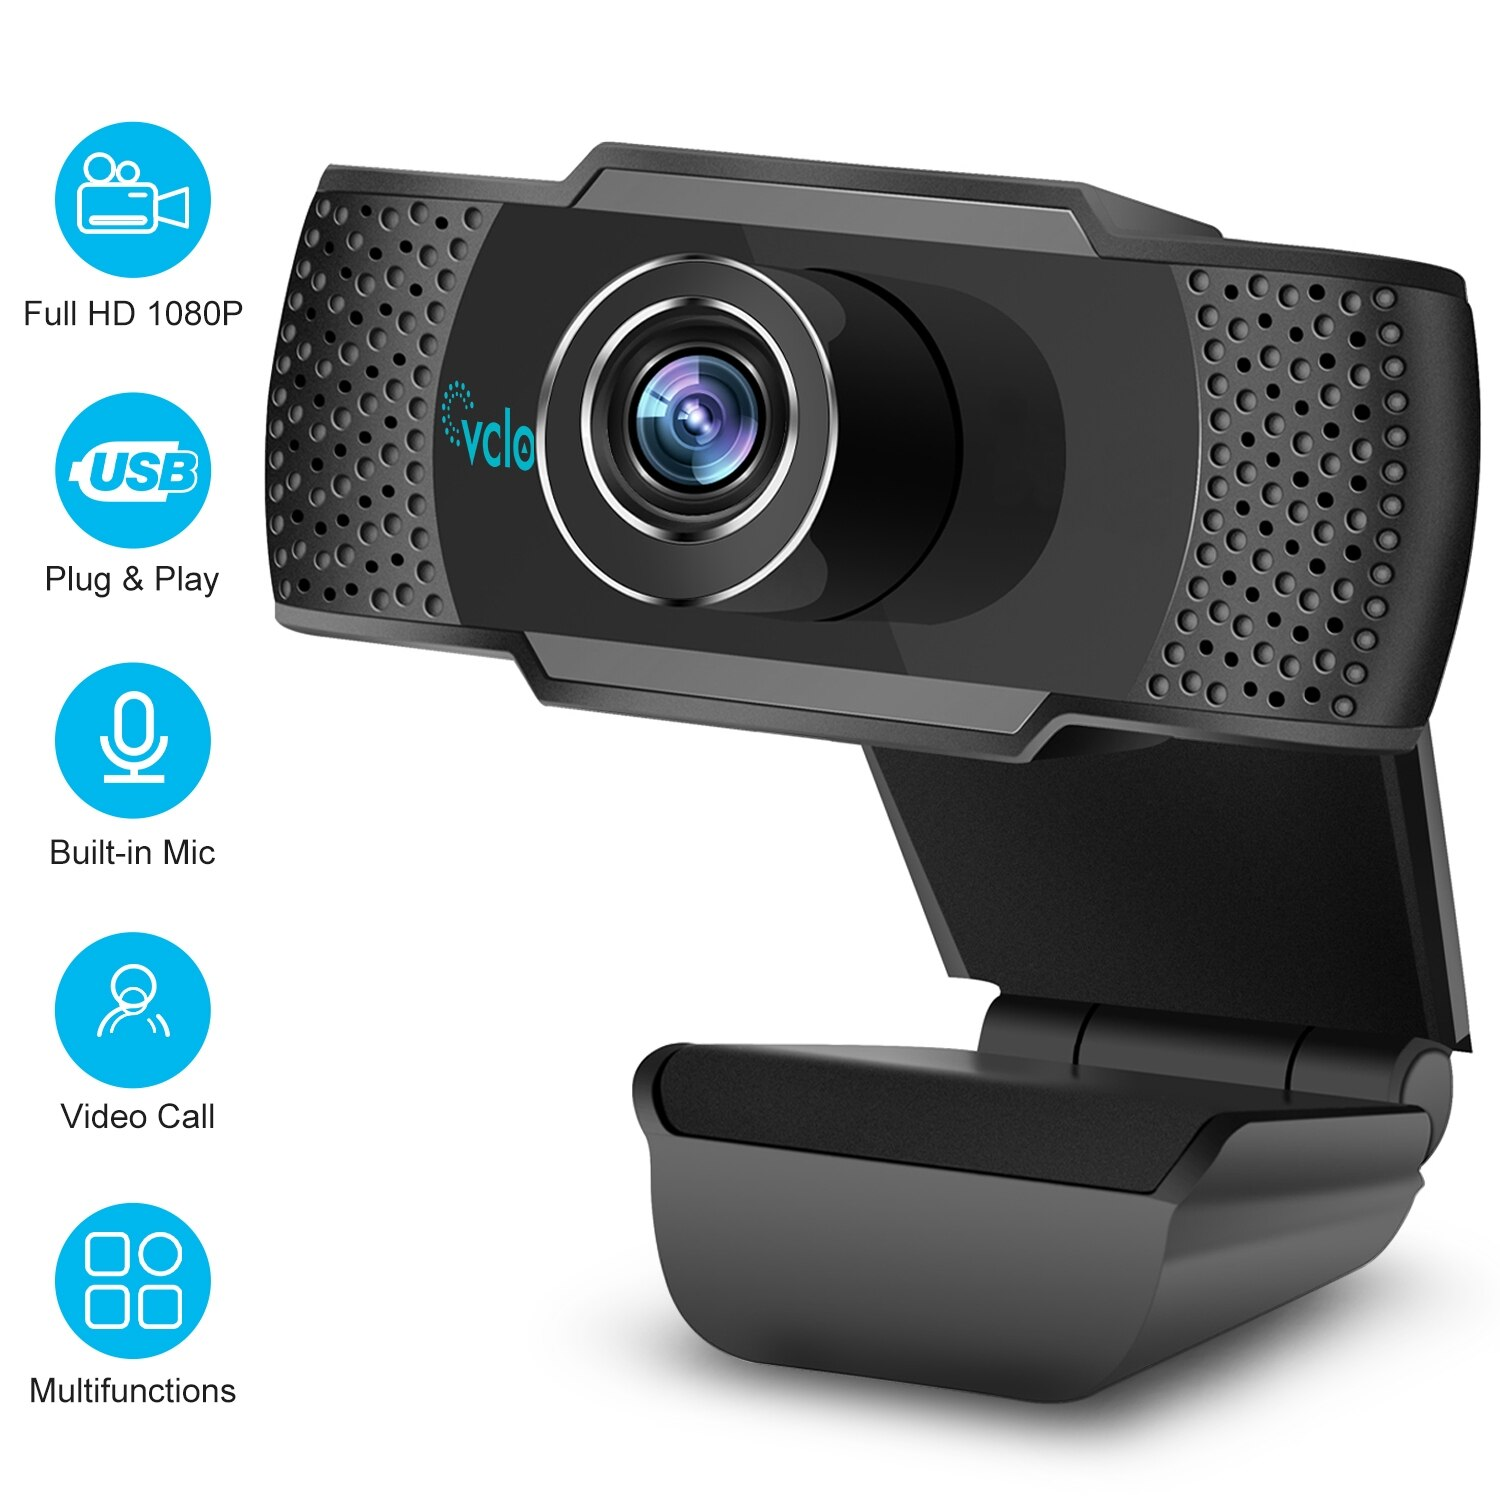 Vcloo 1080P HD Webcam with Microphone,Webcam for Gaming Conferencing,Laptop or Desktop Webcam,USB Computer Camera for Mac Xbox YouTube Skype OBS,Fast Autofocus